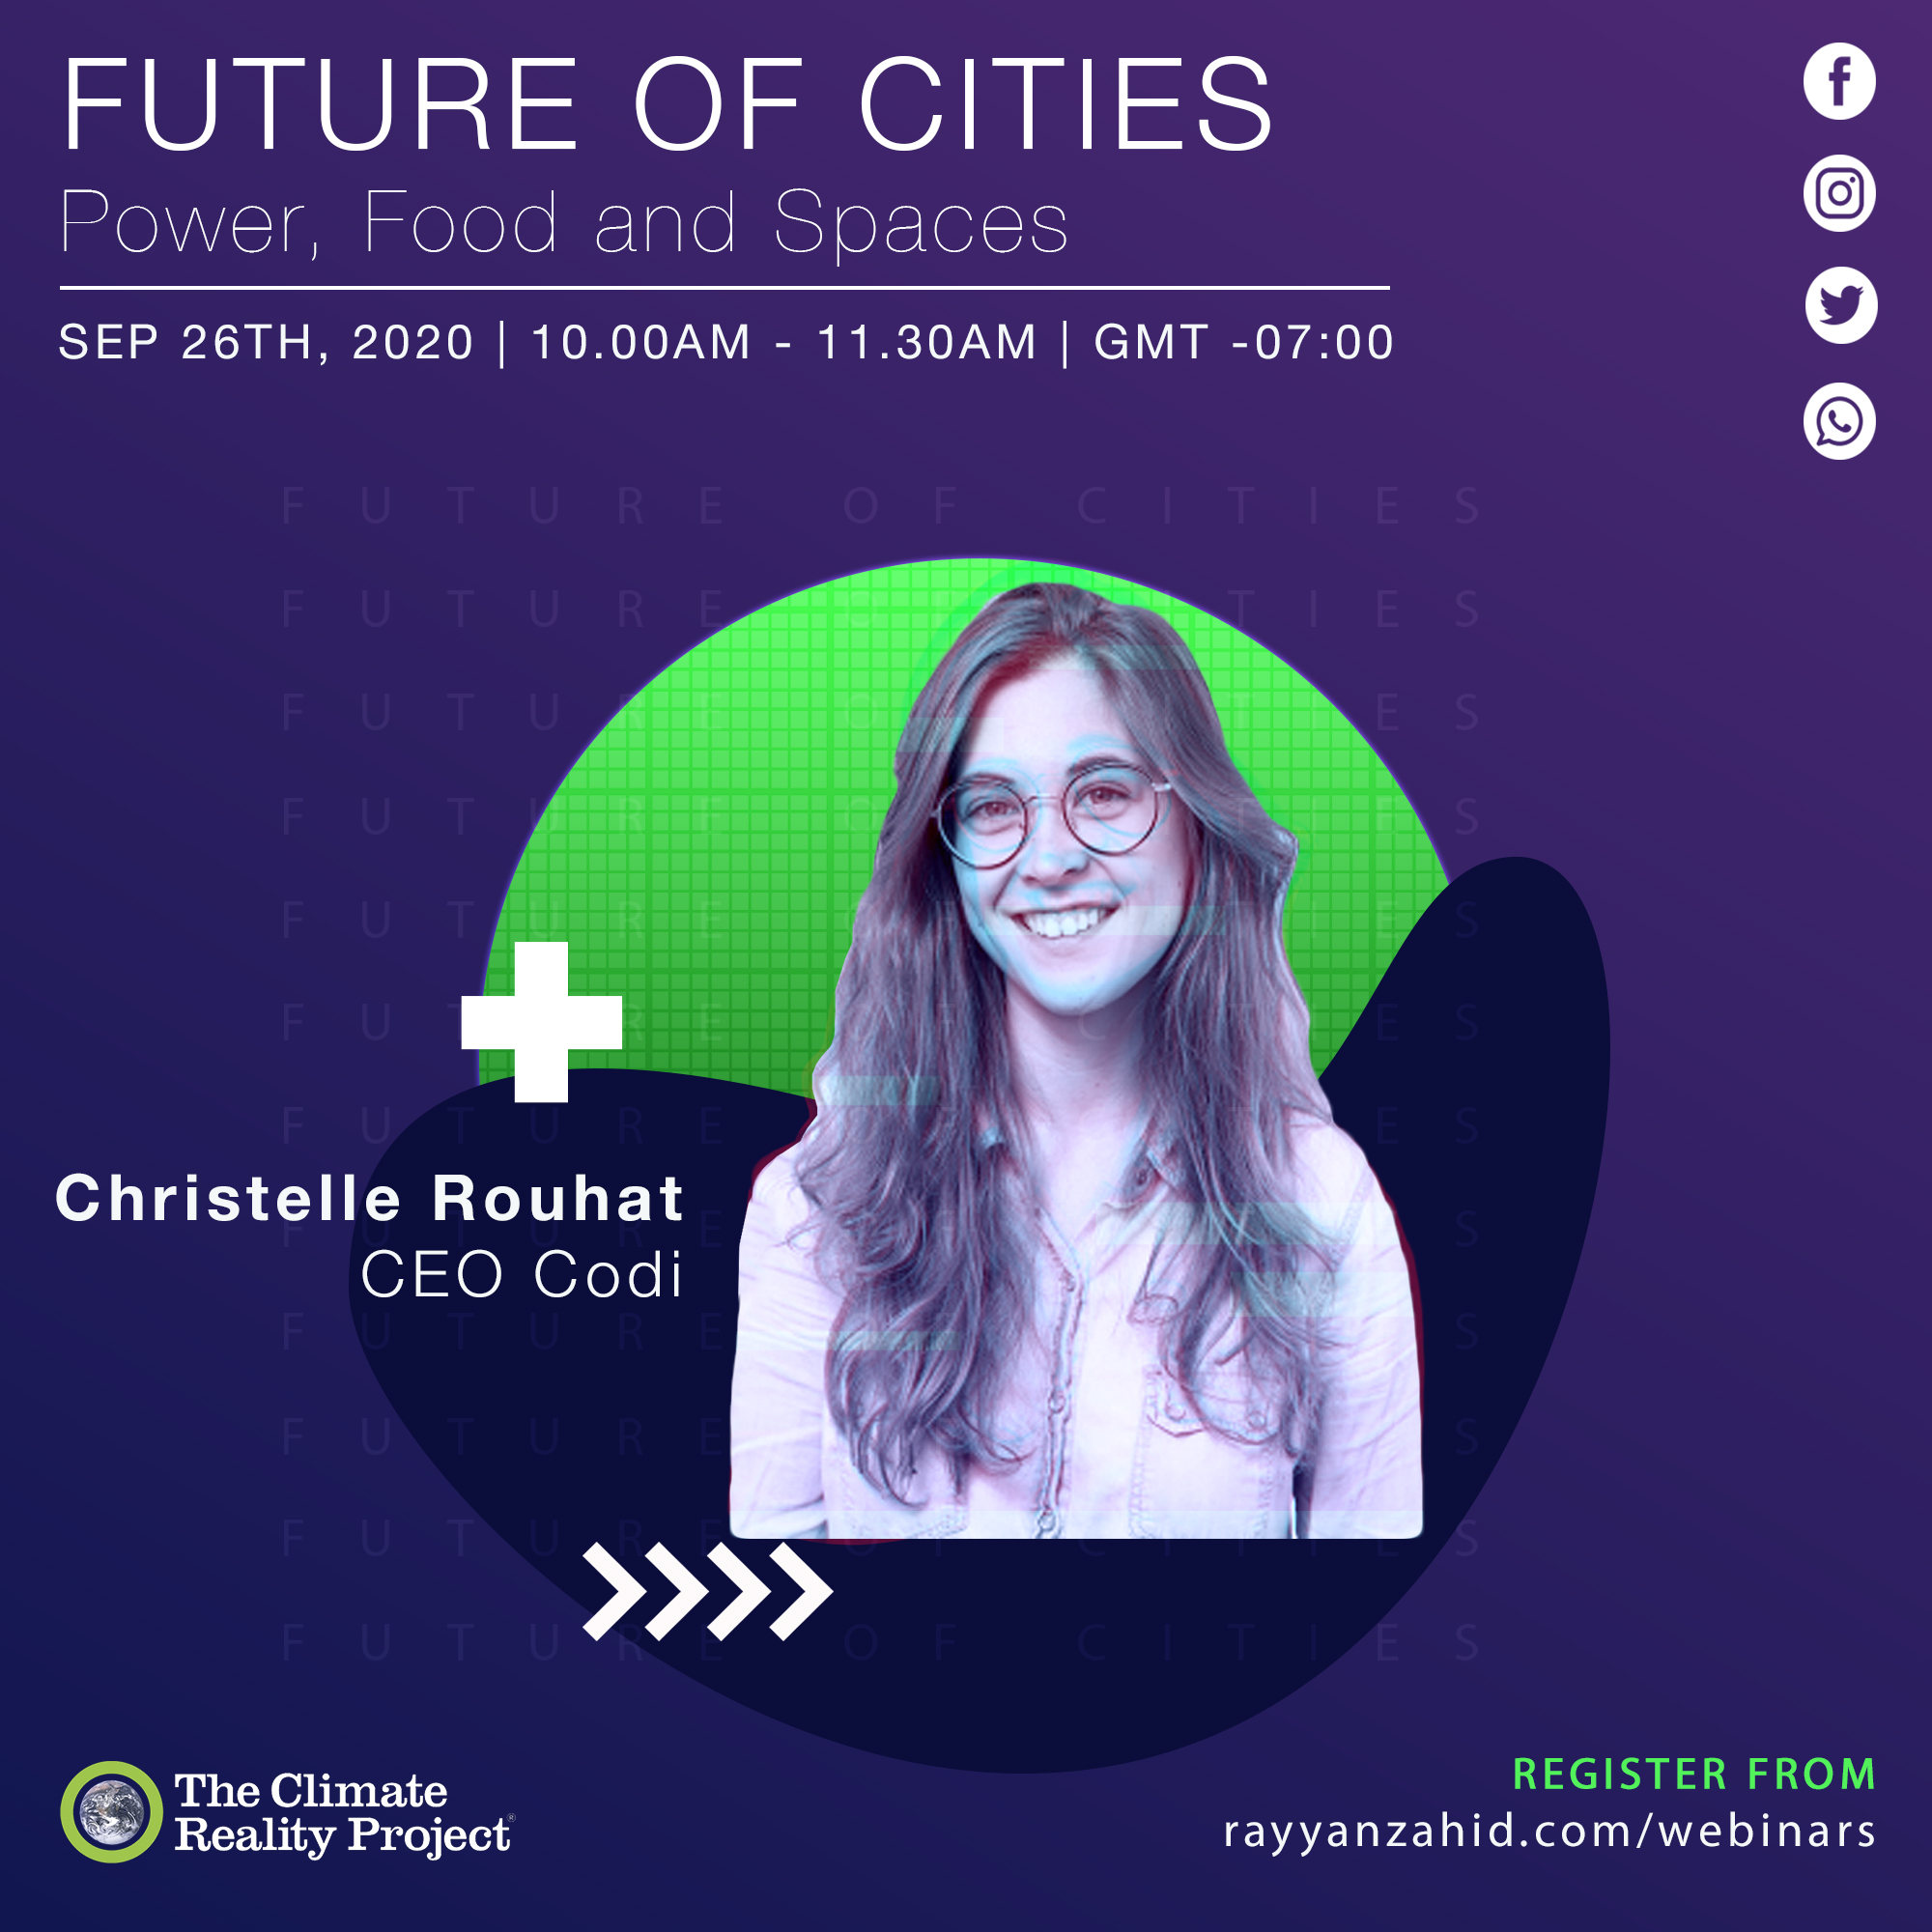 Christelle Rouhat Poster for Future of Cities